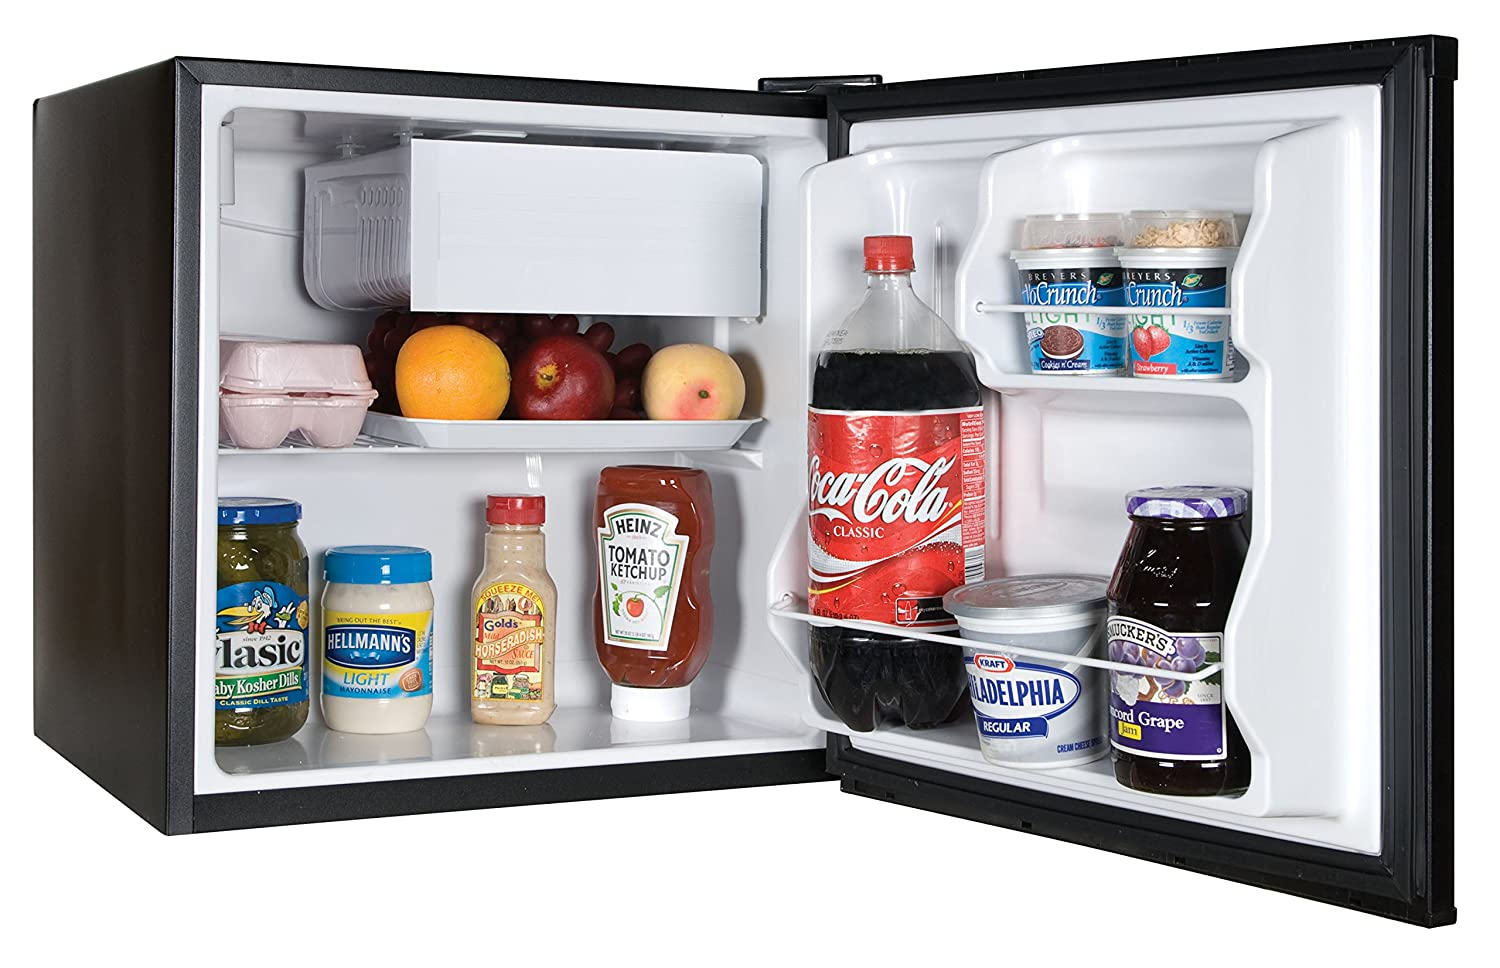 refrigerator 7 5 cu ft. amazon.com: haier hc17sf15rb 1.7 cubic feet refrigerator/freezer, energy star qualified: appliances refrigerator 7 5 cu ft e